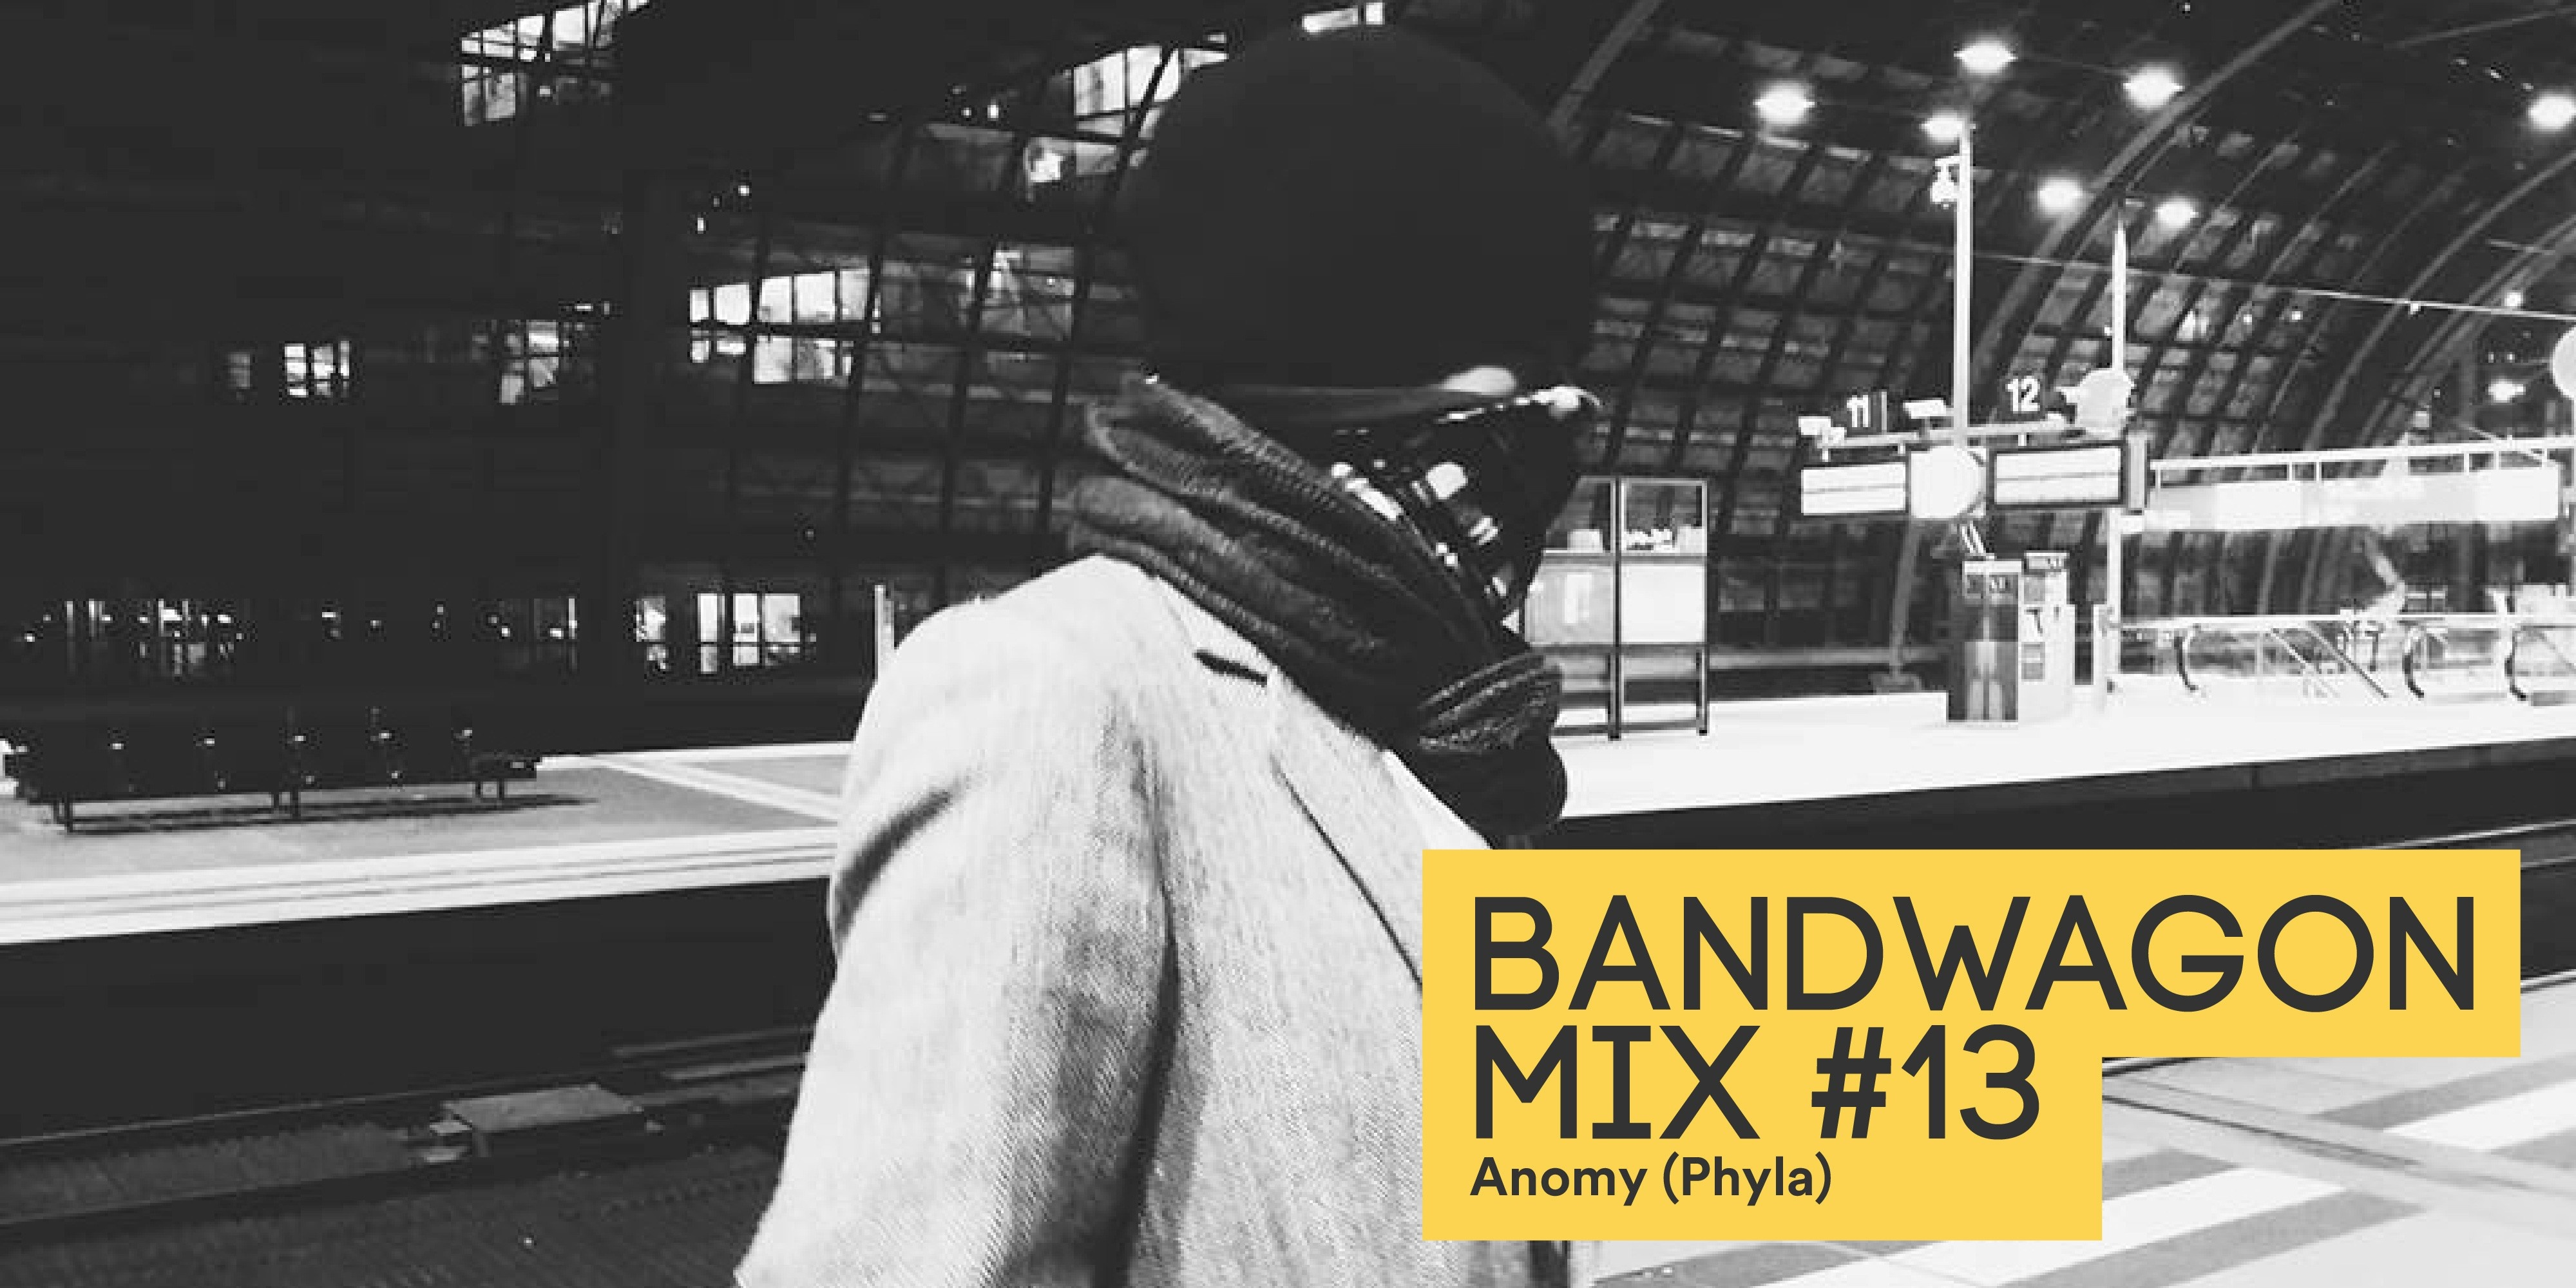 Bandwagon Mix #13: Anomy (Phyla)